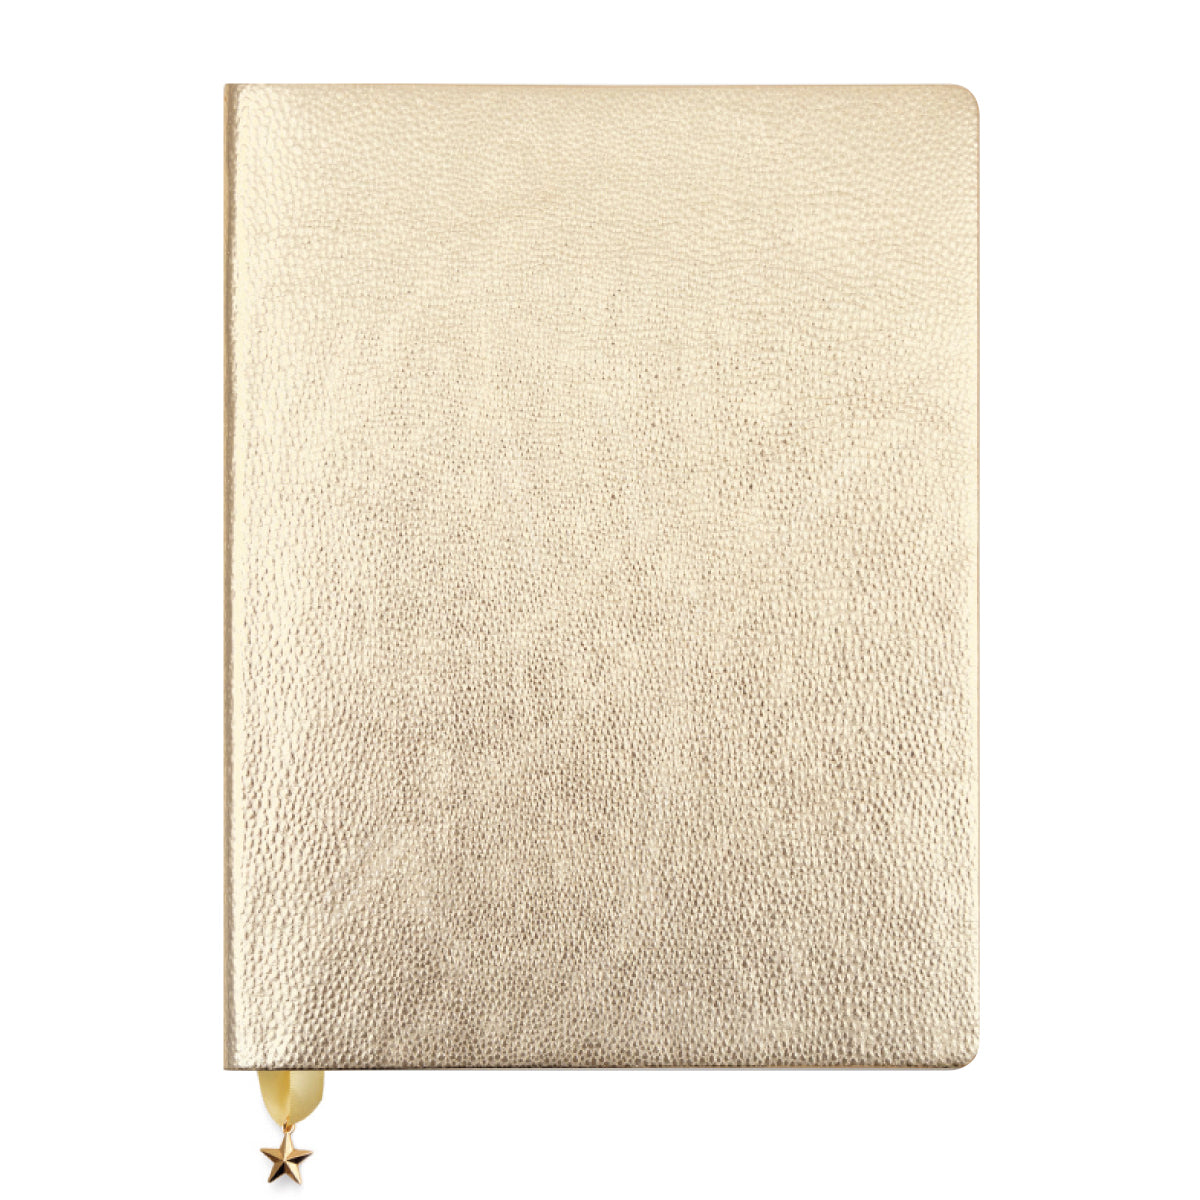 ALL THAT GLITTERS JOURNAL - LIGHT GOLD METALLIC